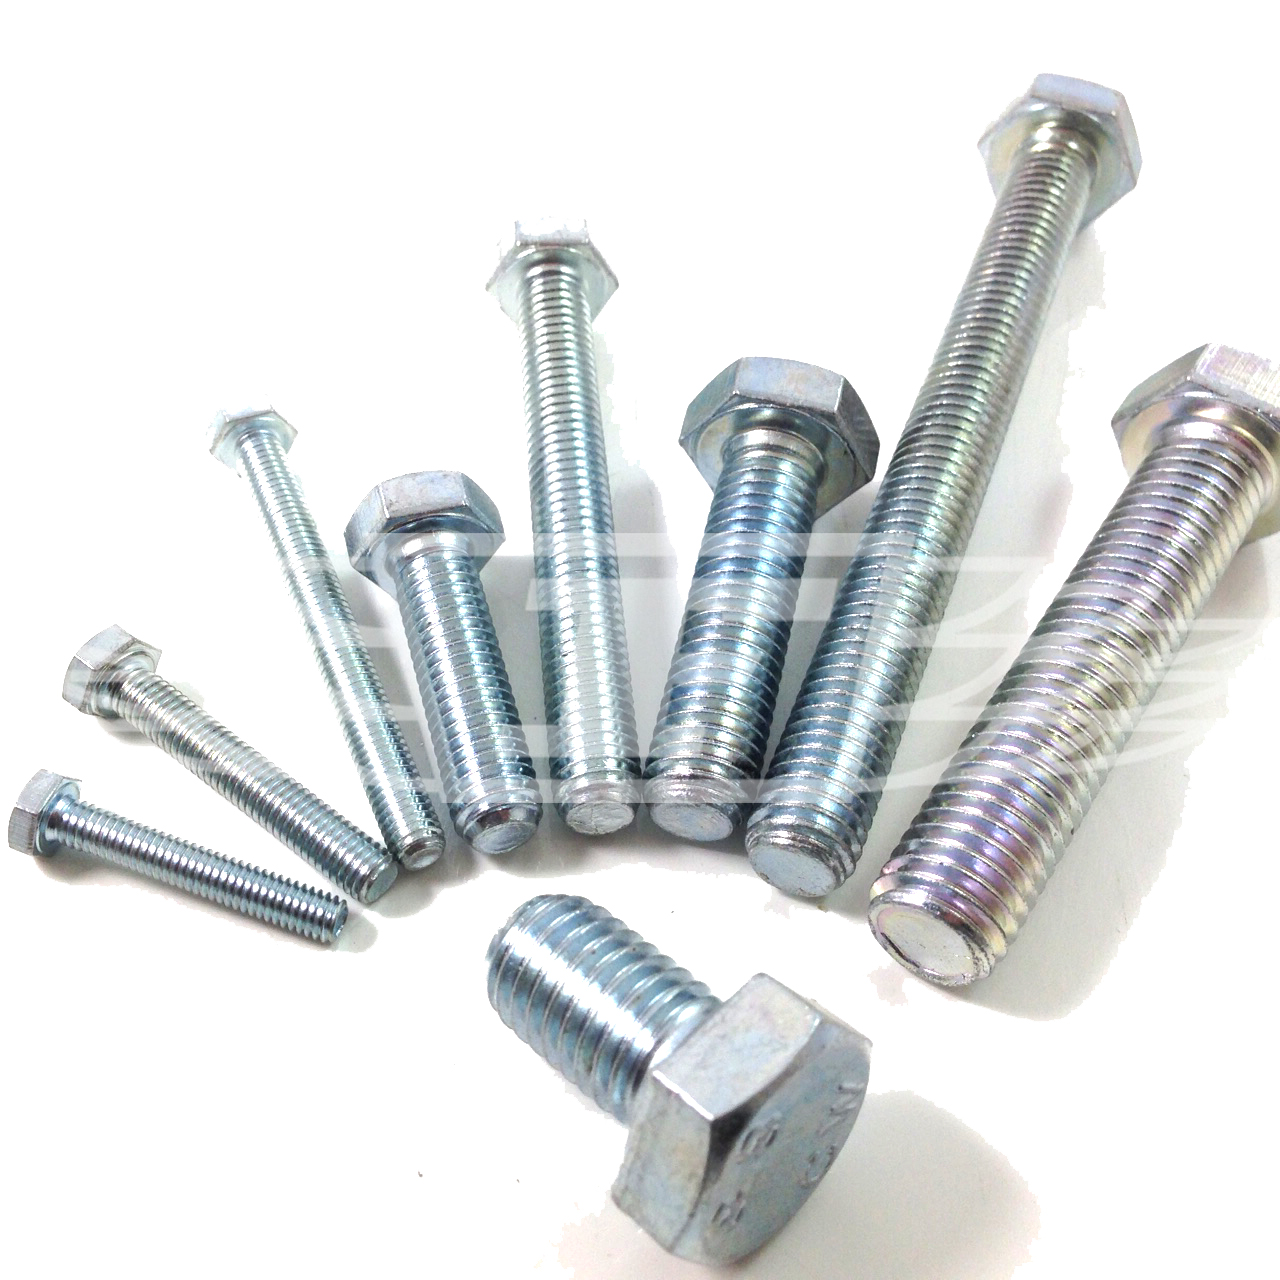 Setscrew M10 10mm x 130mm Pack of 1 A2 Stainless Steel Fully Threaded Hex Bolt